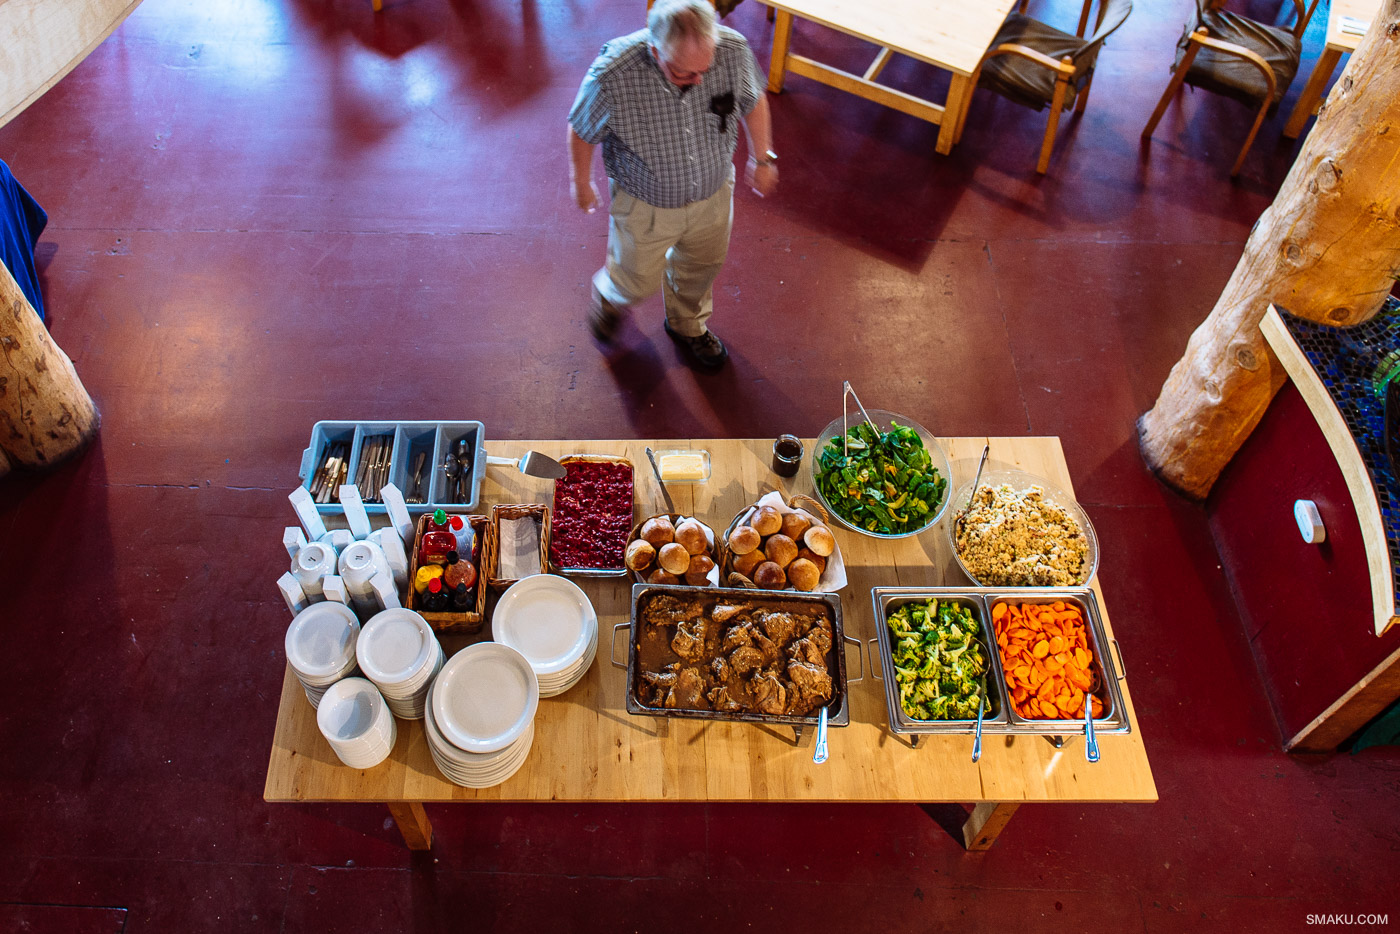 The buffet-style food table.